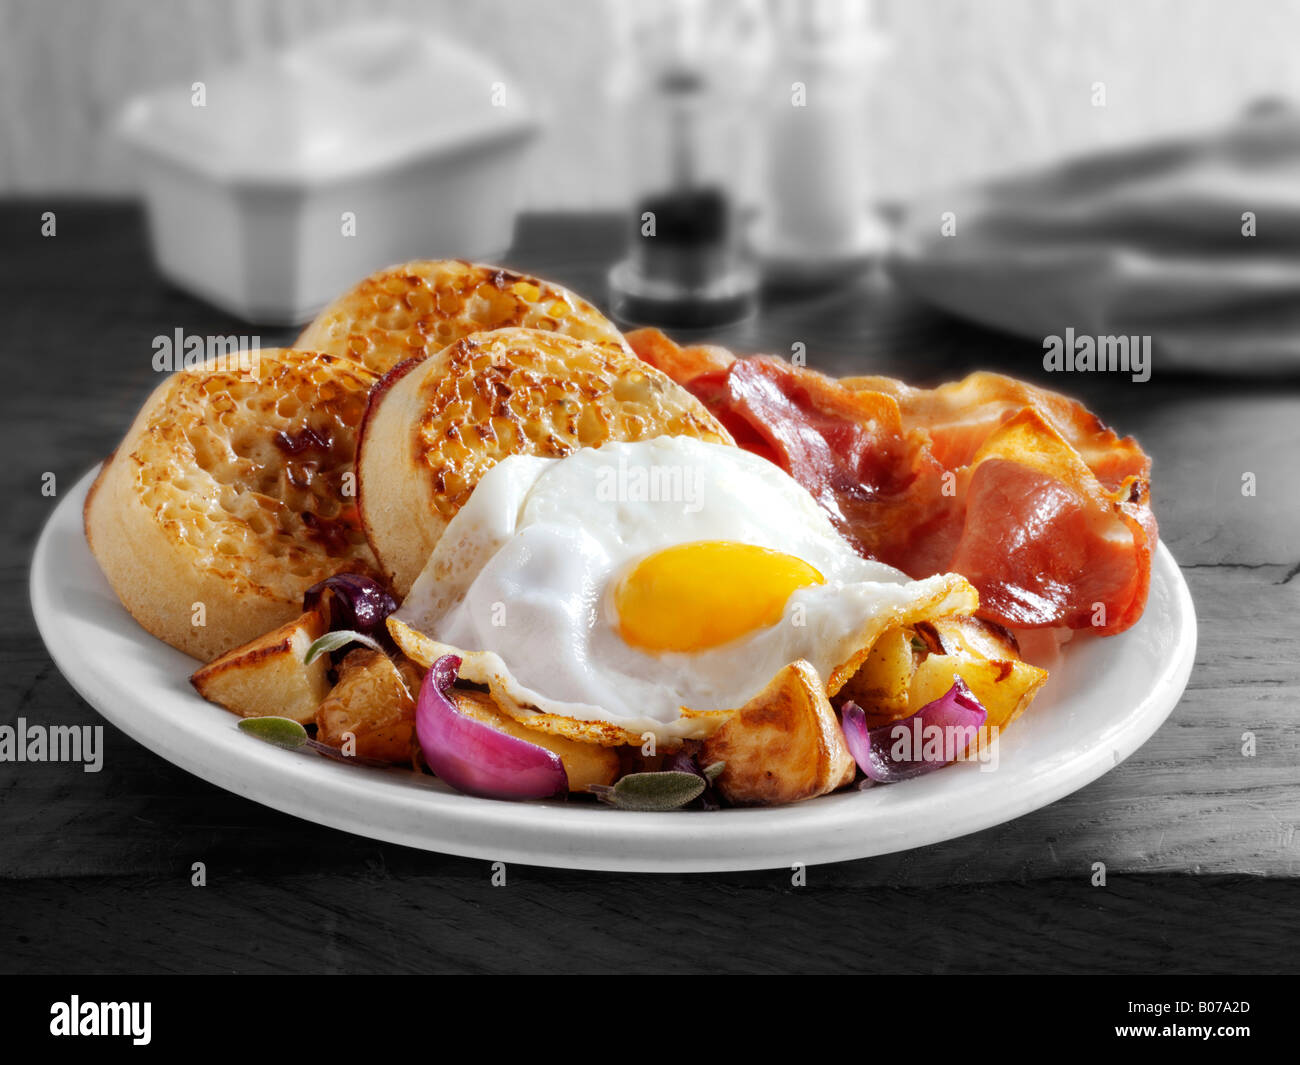 Full English Breakfast With Crumpets Sauteed Potato Onion Bacon And Fried Egg